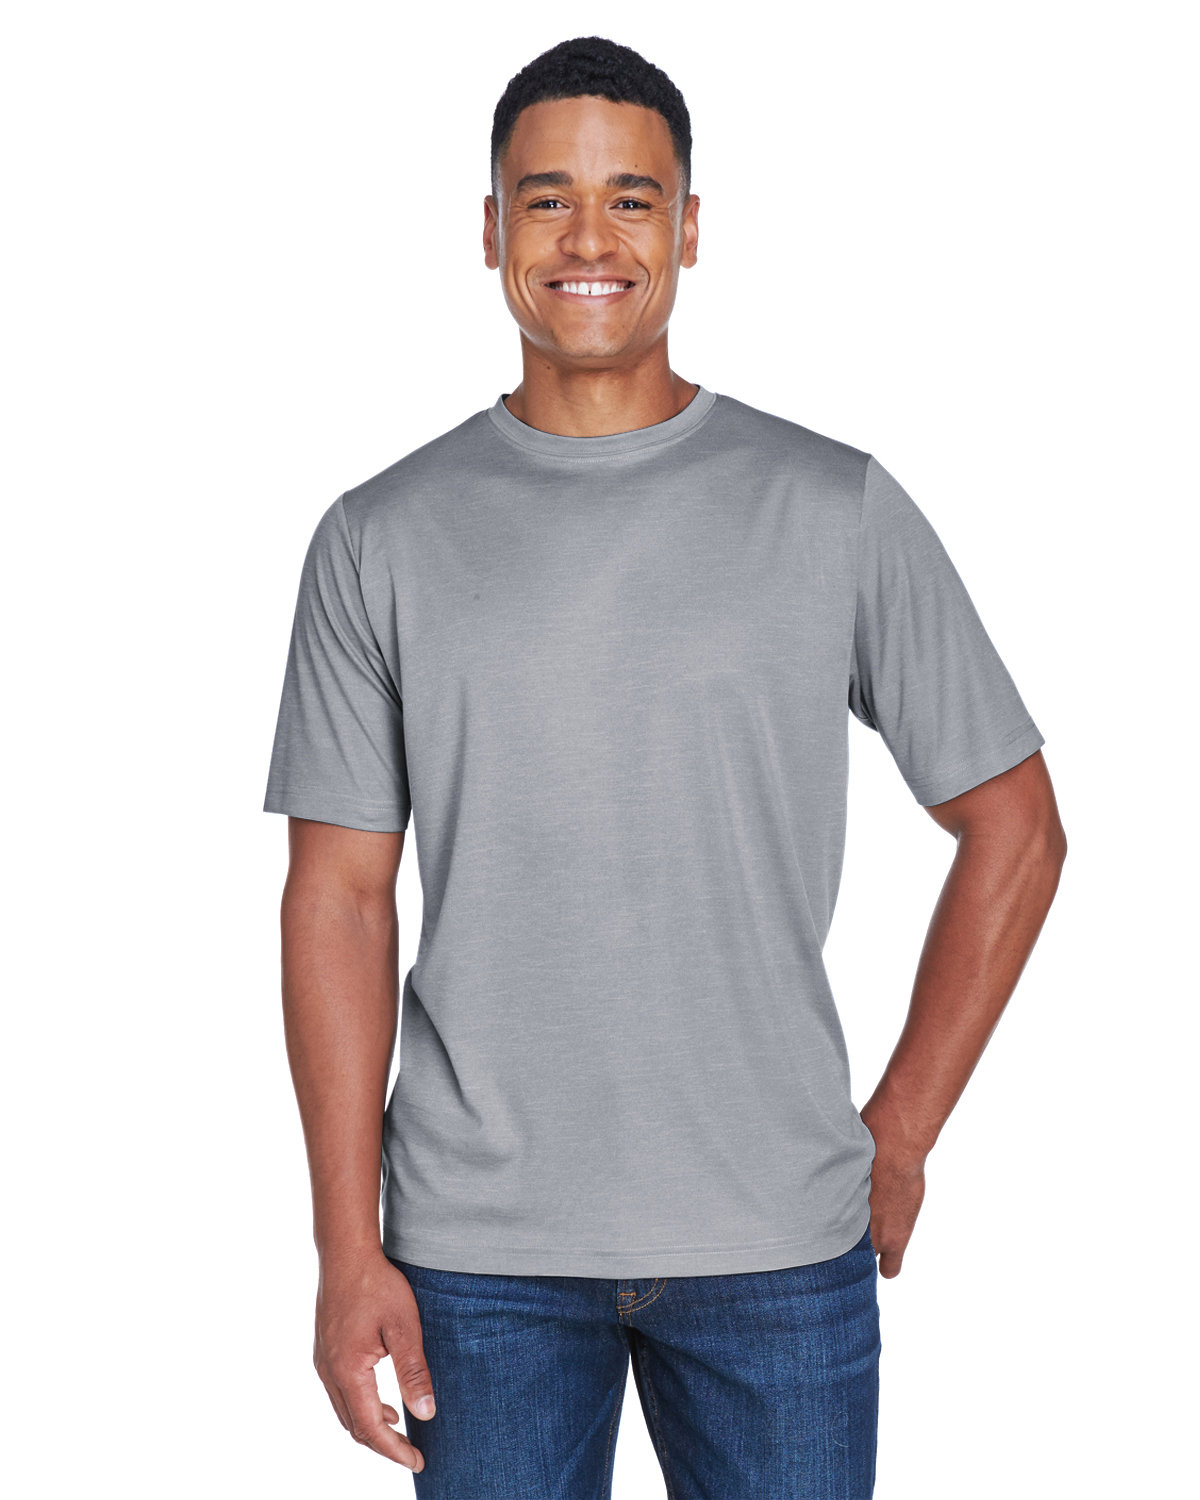 Team 365 Men's Sonic Heather Performance T-Shirt ATHLETIC HEATHER